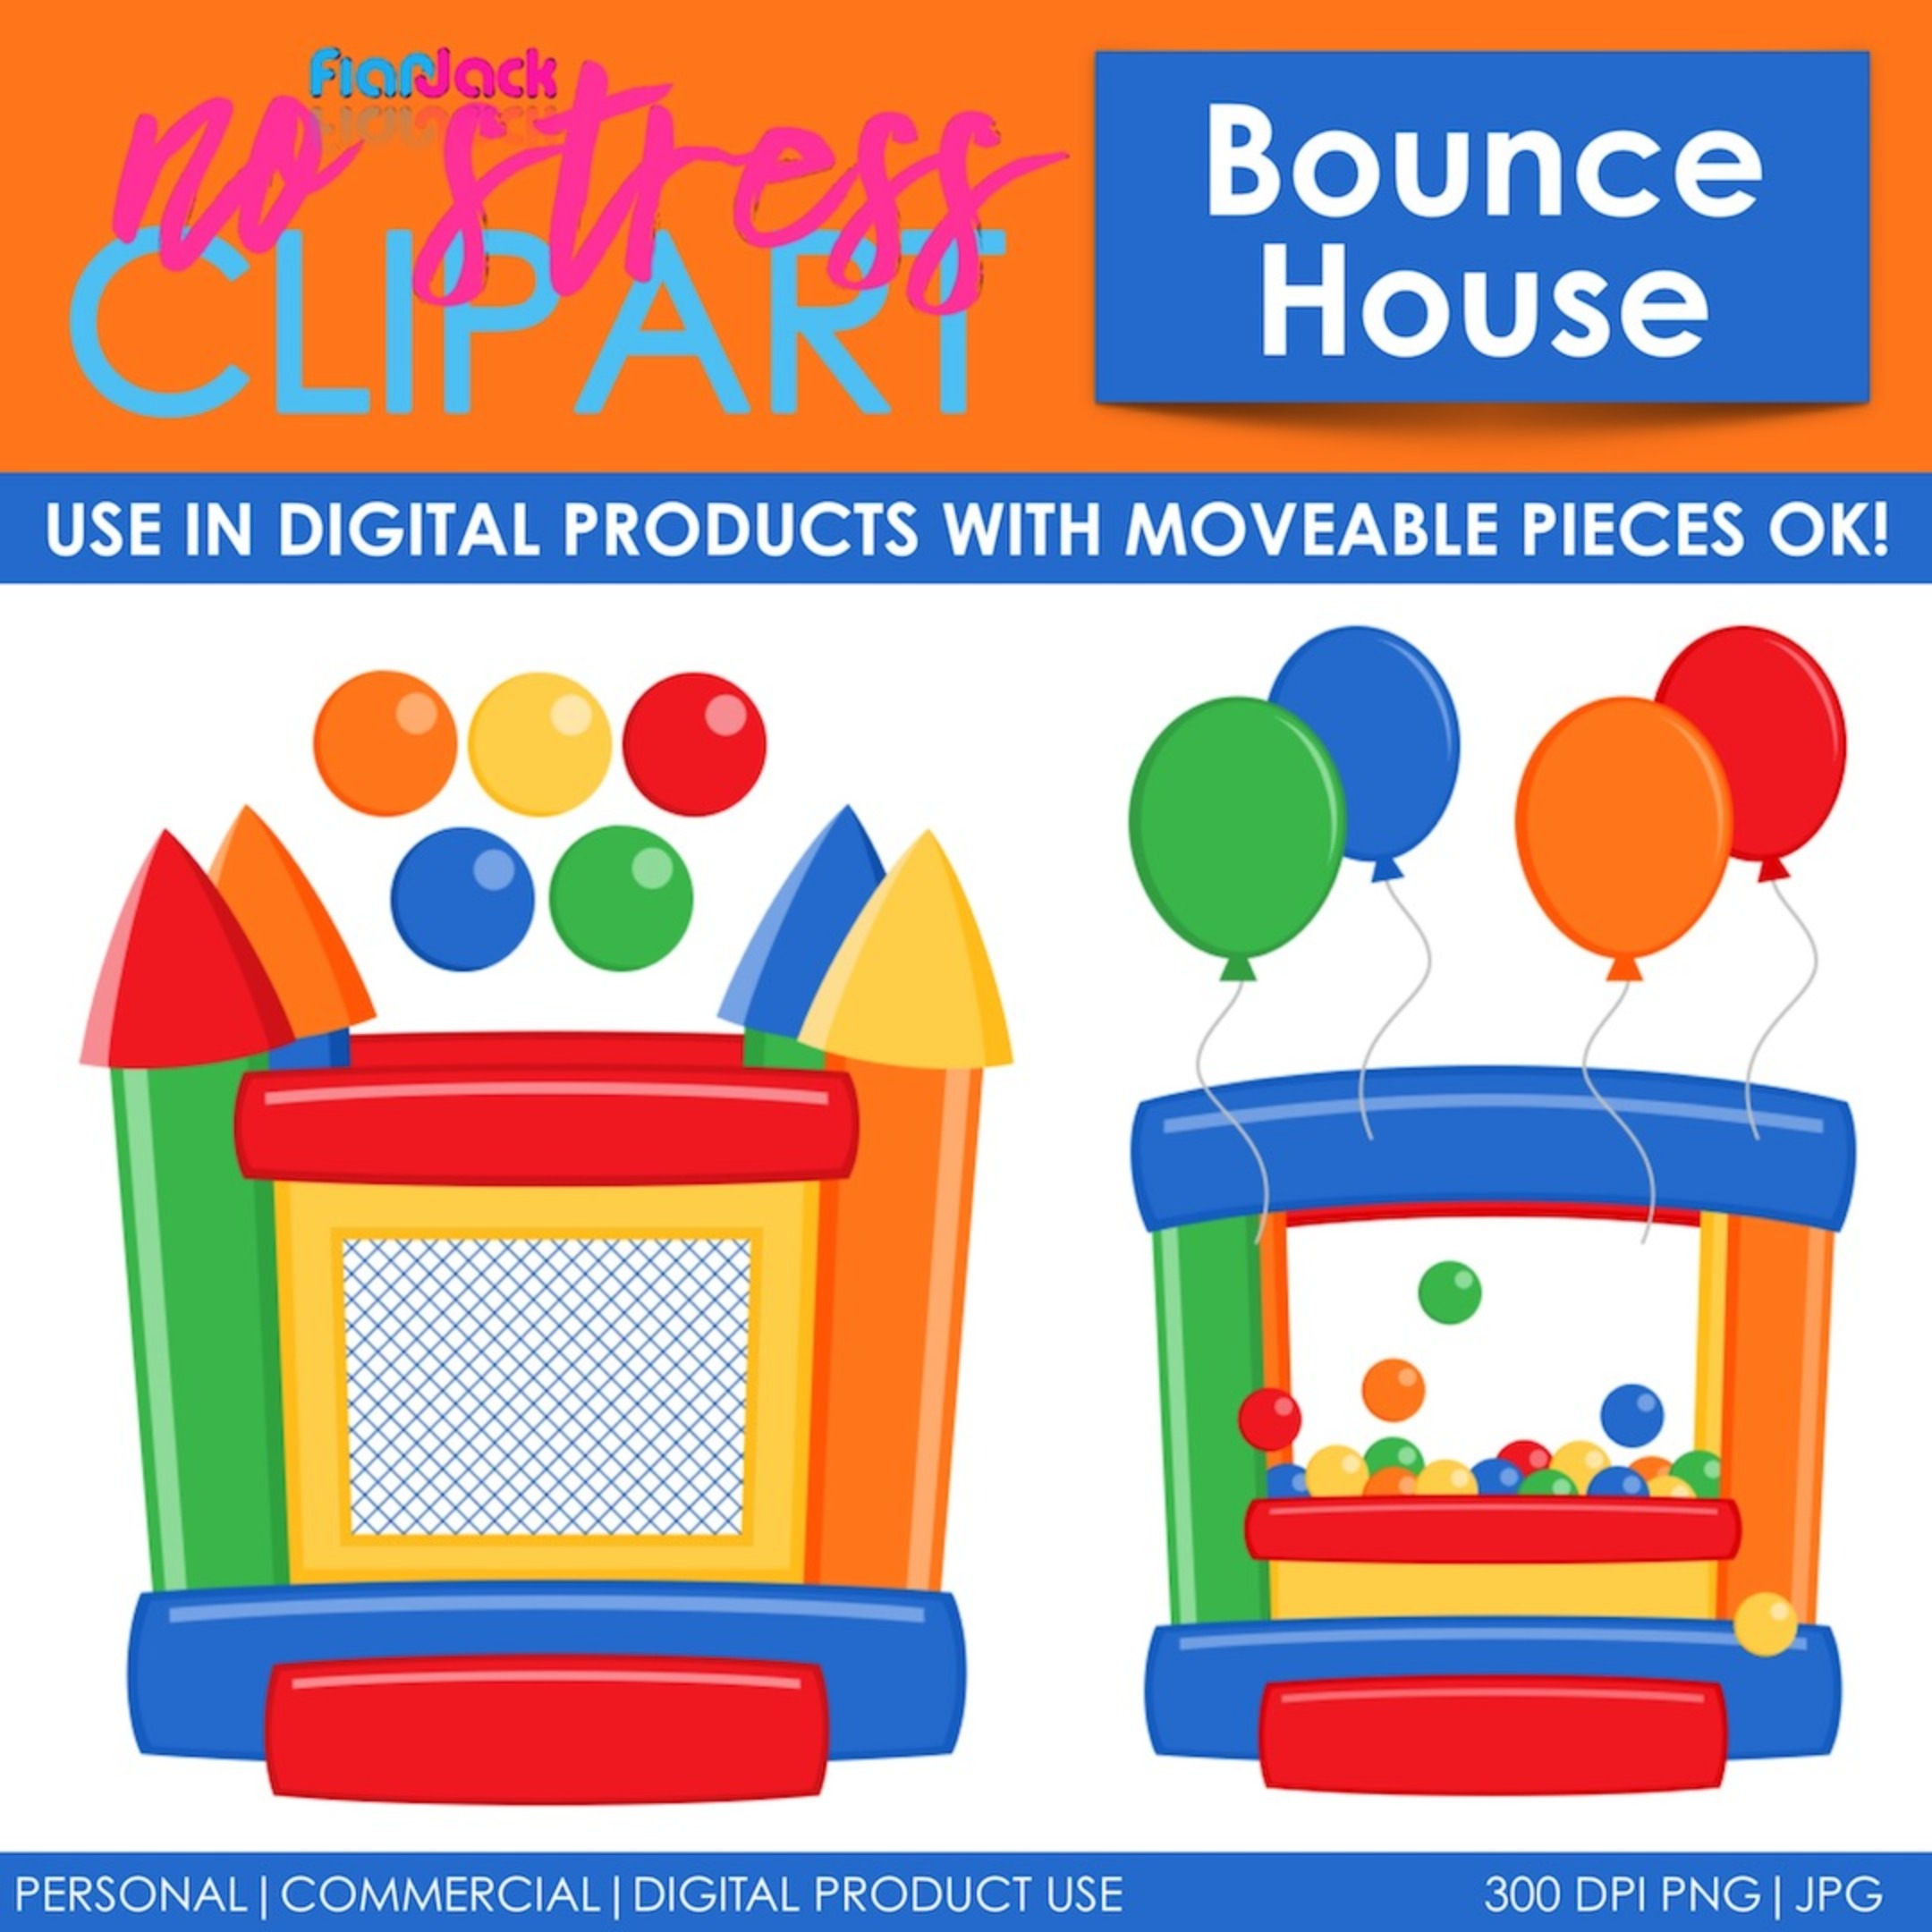 Bounce House Blue Version